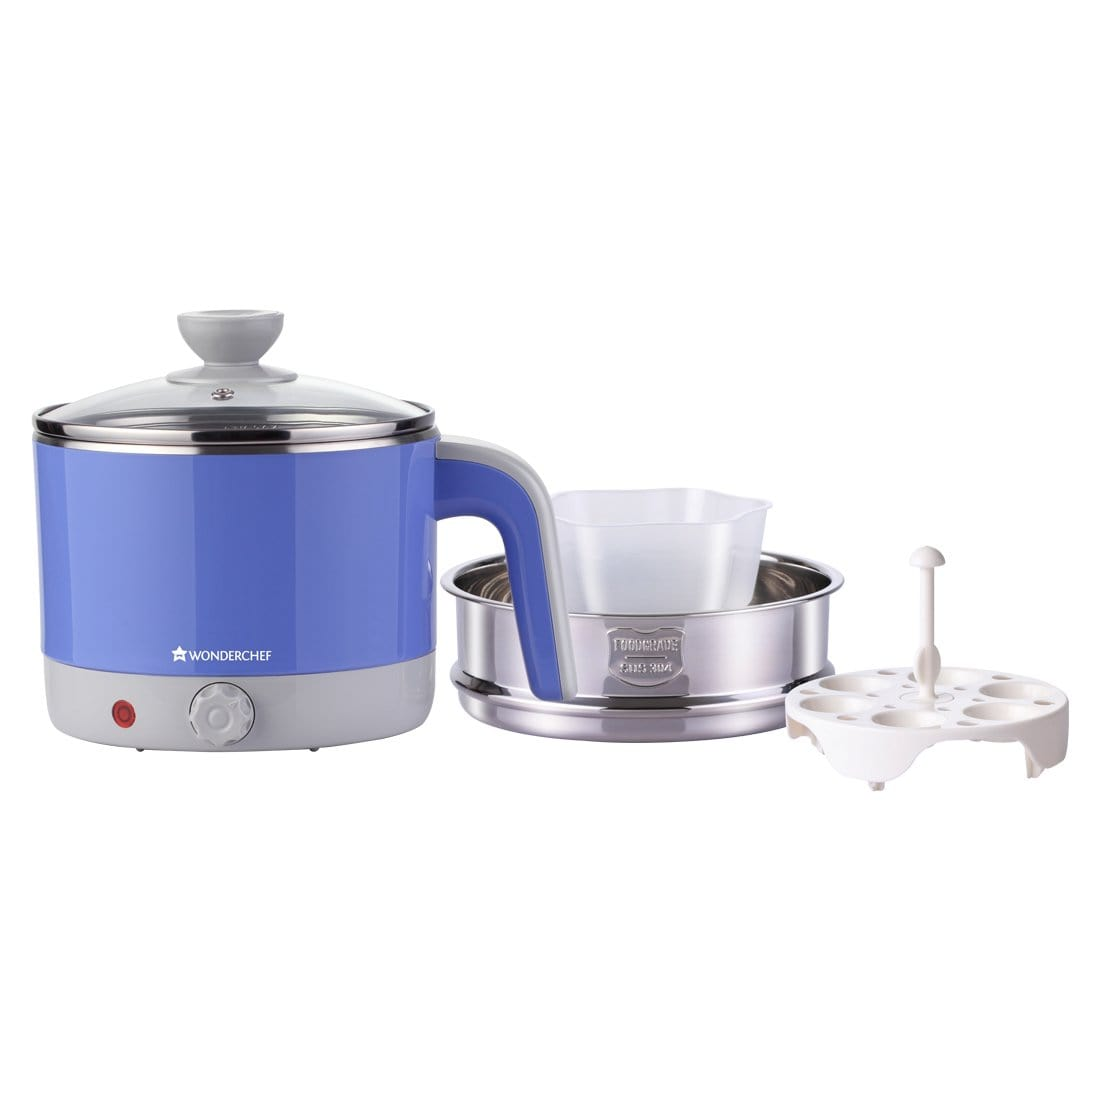 Wonderchef Luxe Multicook Kettle Blue 1.2 Litre-Appliances